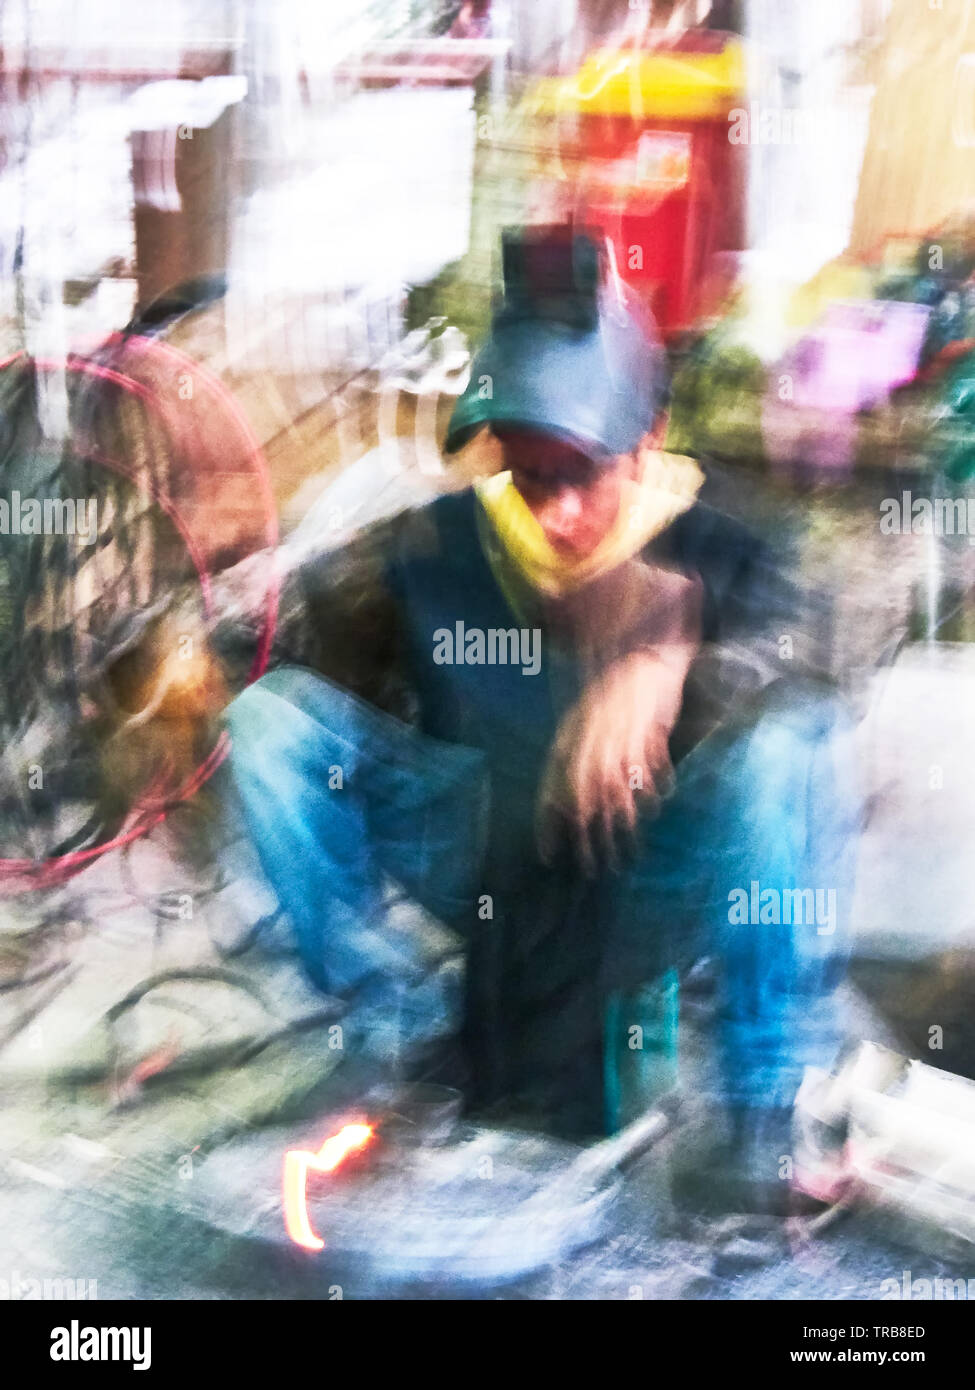 Abstract colorful picture of a man dressed in jeans doing a welding job in Asia - Stock Image